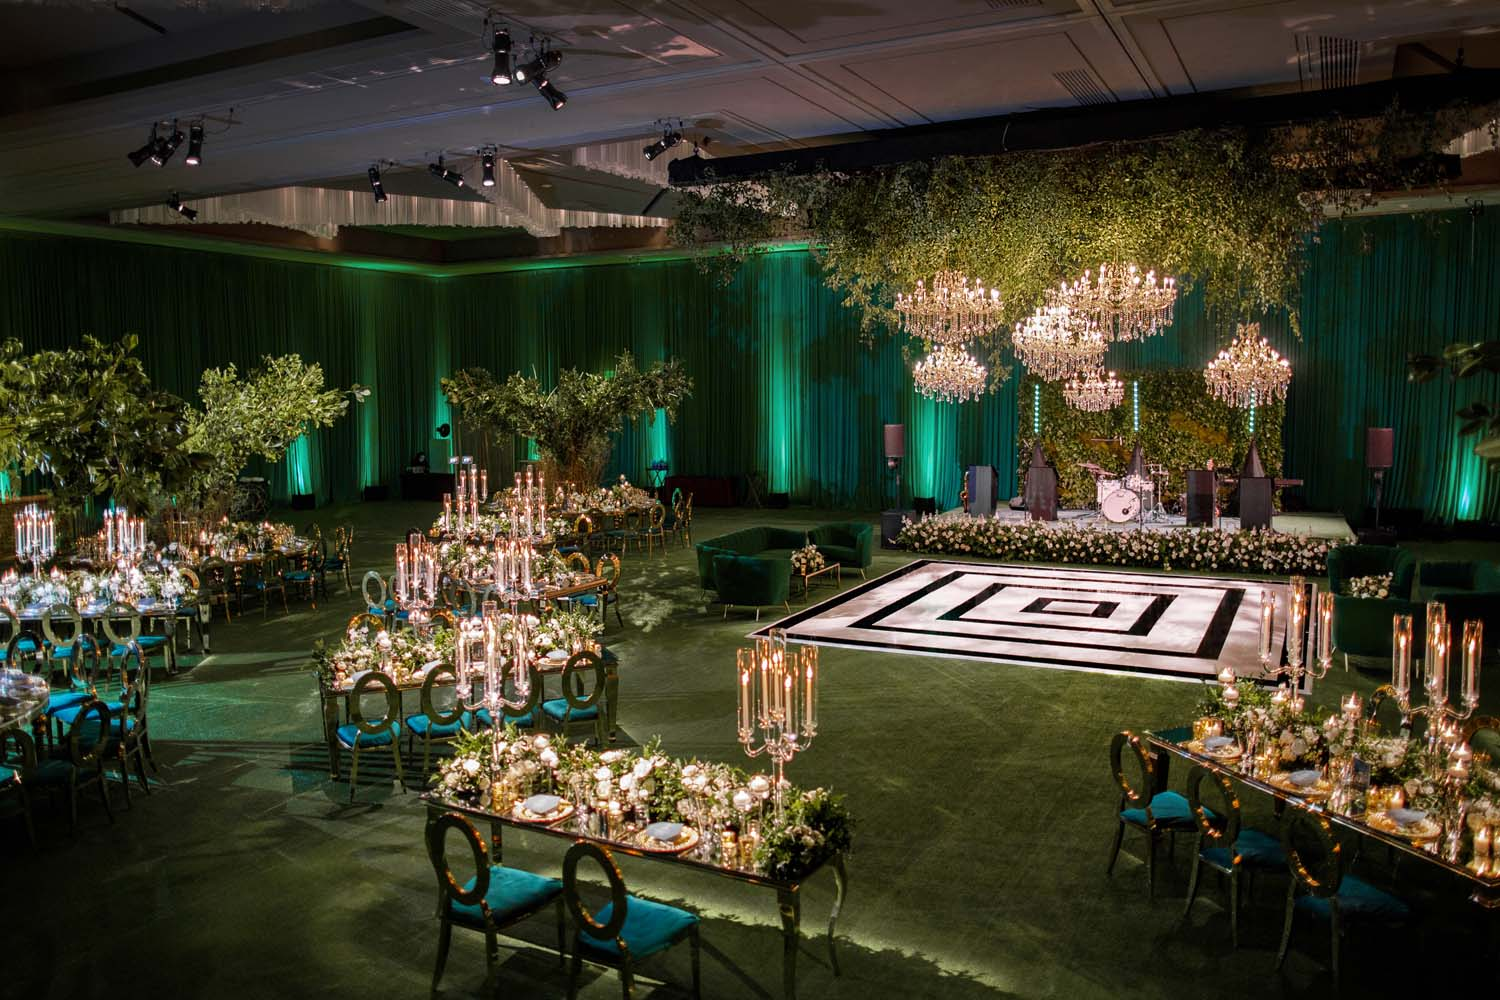 Green on green city of oz wedding at ARIA Las Vegas with White and Black dance floor. Luxury Las Vegas Wedding Planner Andrea Eppolito. www.andreaeppolitoevents.com. Photo by Rene Zadori.